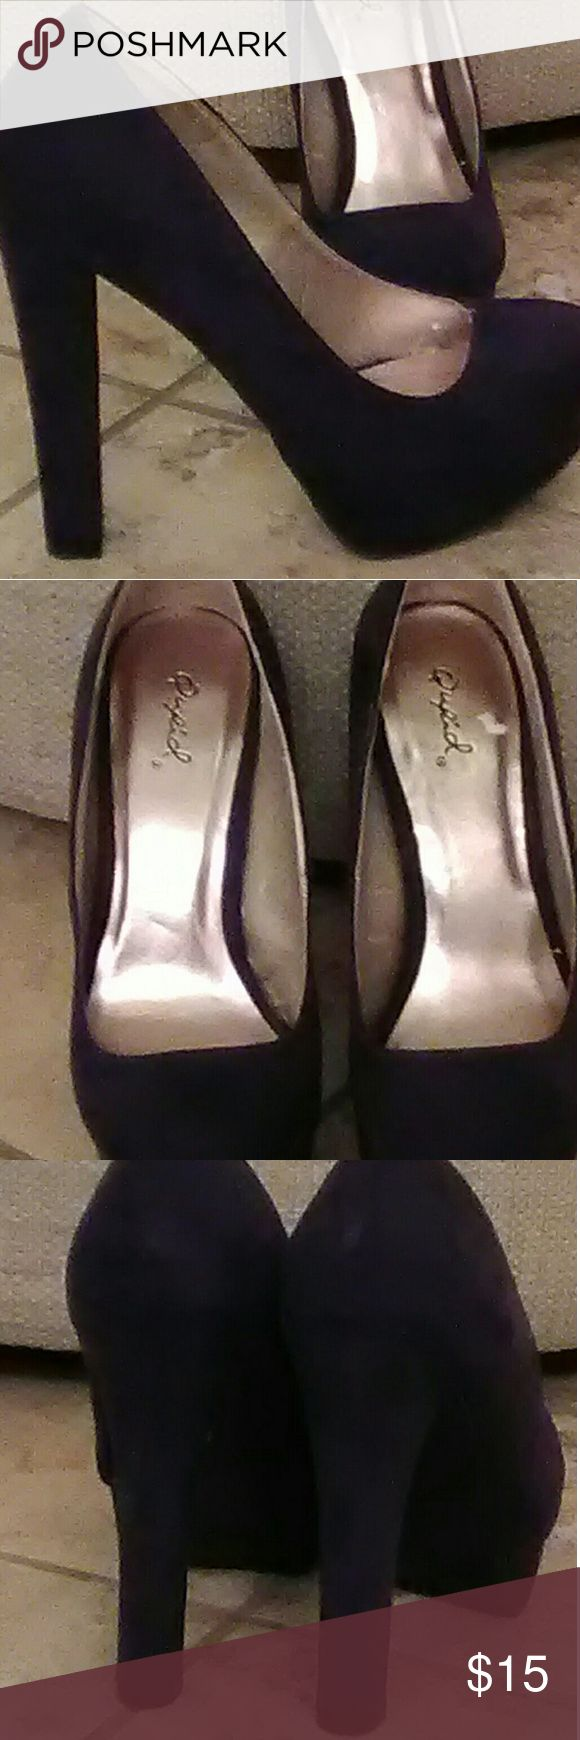 Purple suede pumps sz7 Qupid purple suede platform pumps size 7. Worn once. My feet are wide and they pinched my toes. Qupid Shoes Platforms